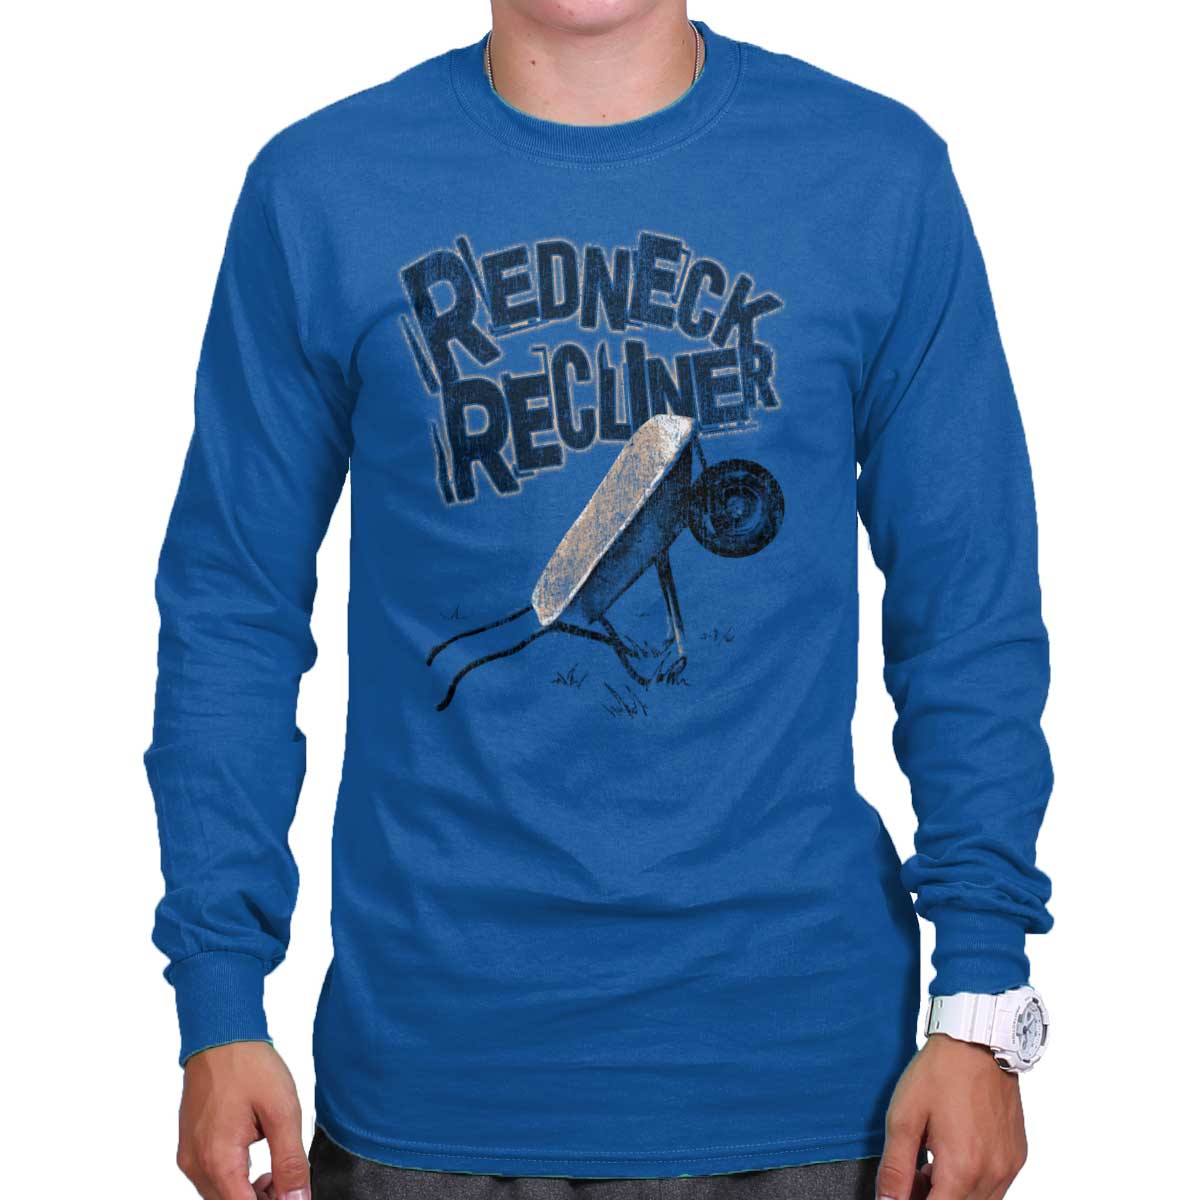 Redneck Recliner Funny Country Shirt | Cowboy Cool Gift Idea Long Sleeve Tee